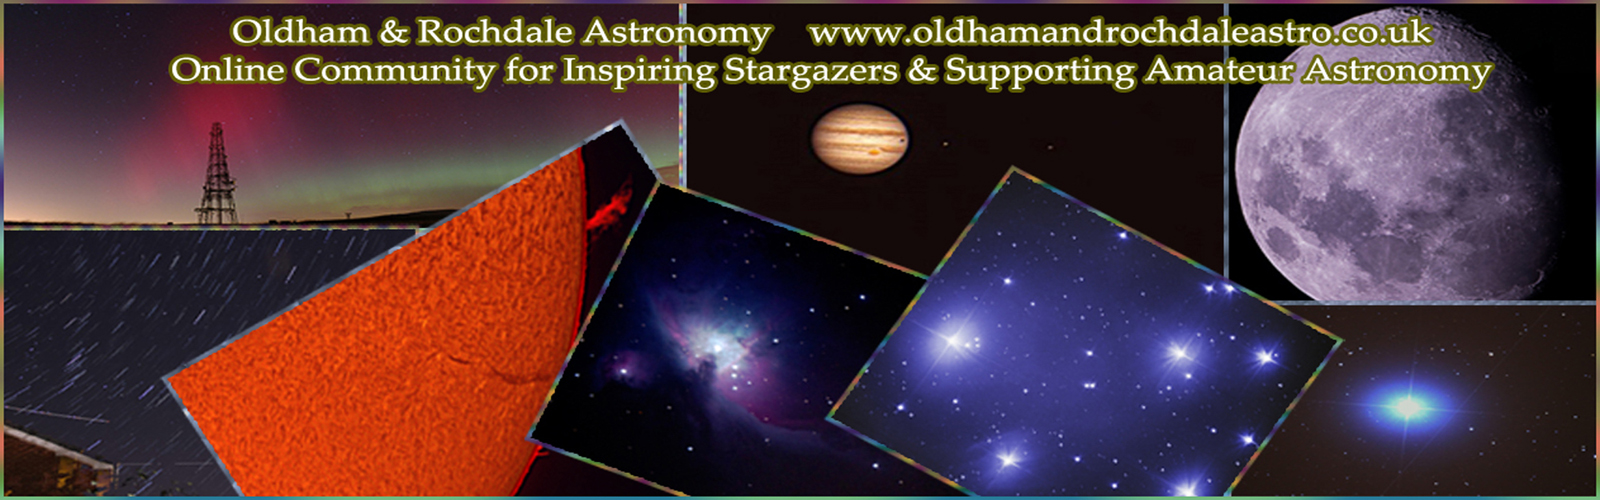 Banner Oldham and Rochdale Astronomy